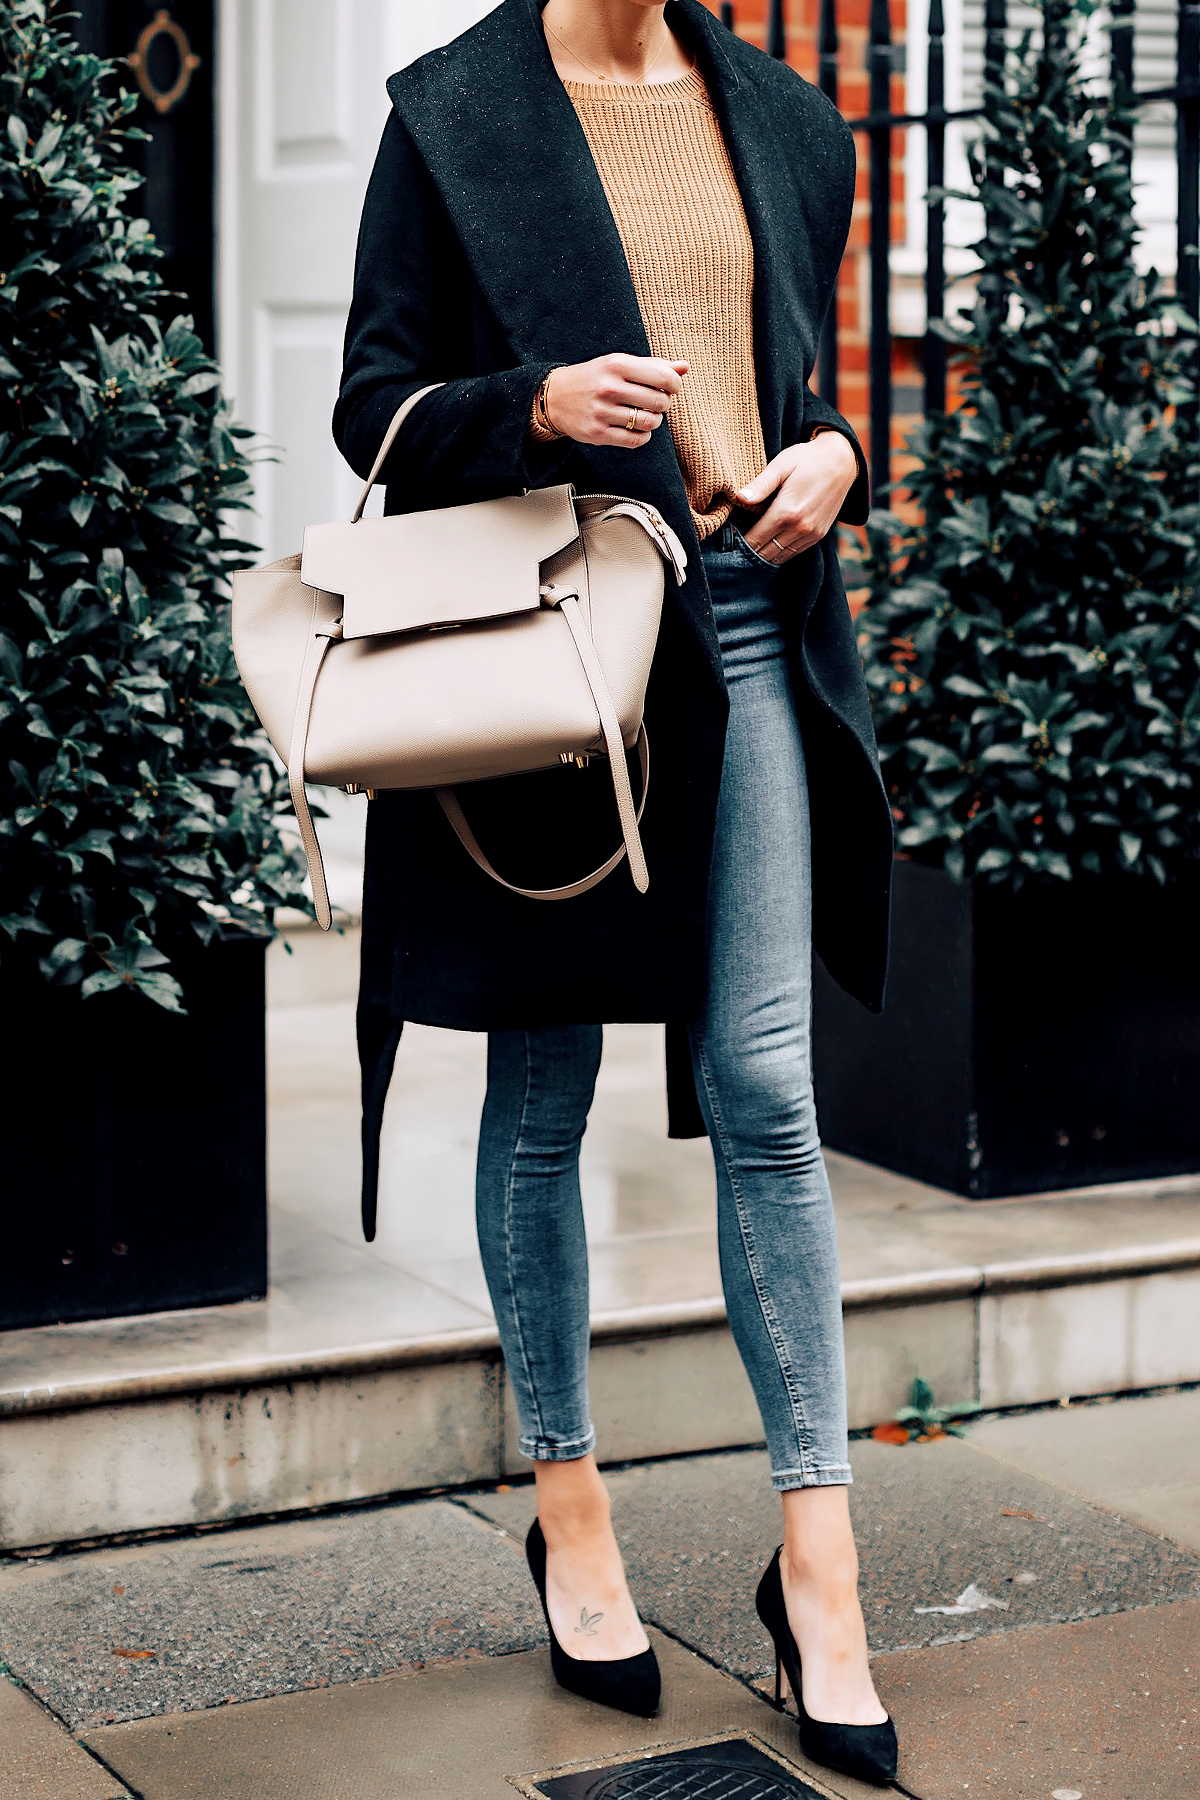 Woman Wearing Ann Taylor Black Wrap Coat Camel Sweater Denim Skinny Jeans Outfit Black Pumps Celine Mini Belt Bag Fashion Jackson San Diego Fashion Blogger London Street Style